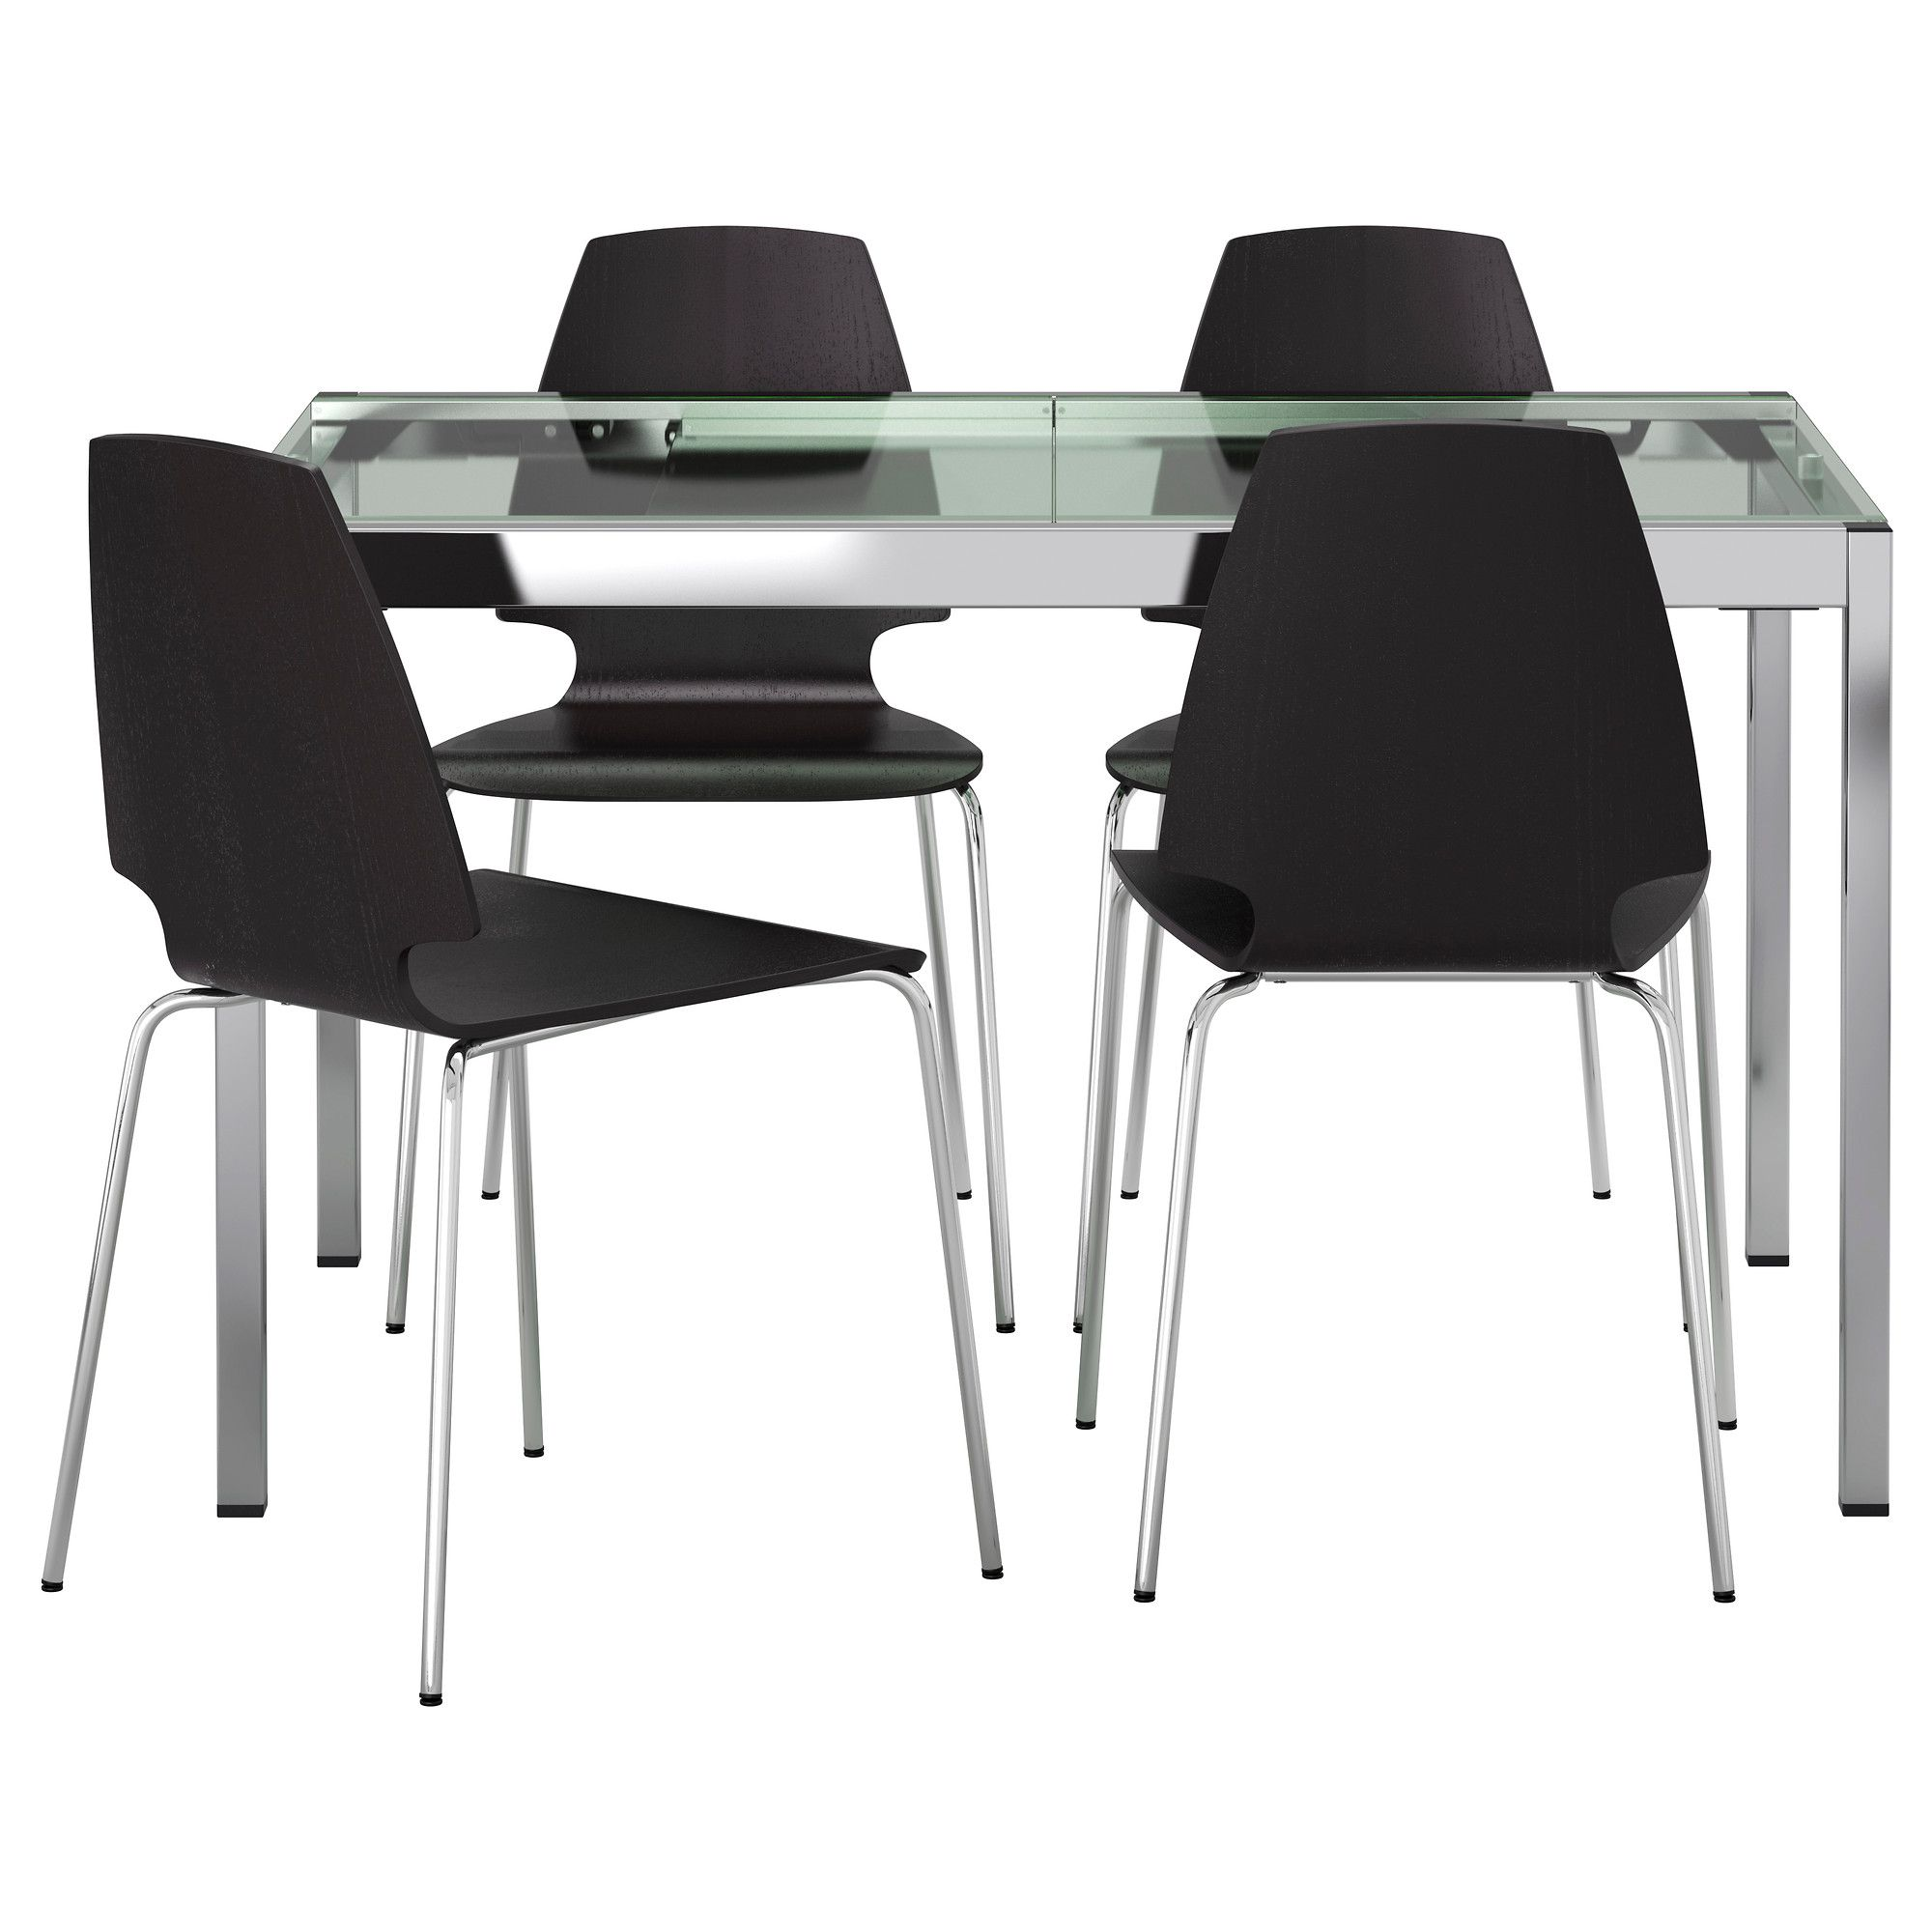 Ikea glass kitchen table - Glivarp Vilmar Table And 4 Chairs Ikea 455 Would Work For A Small Glass Top Dining